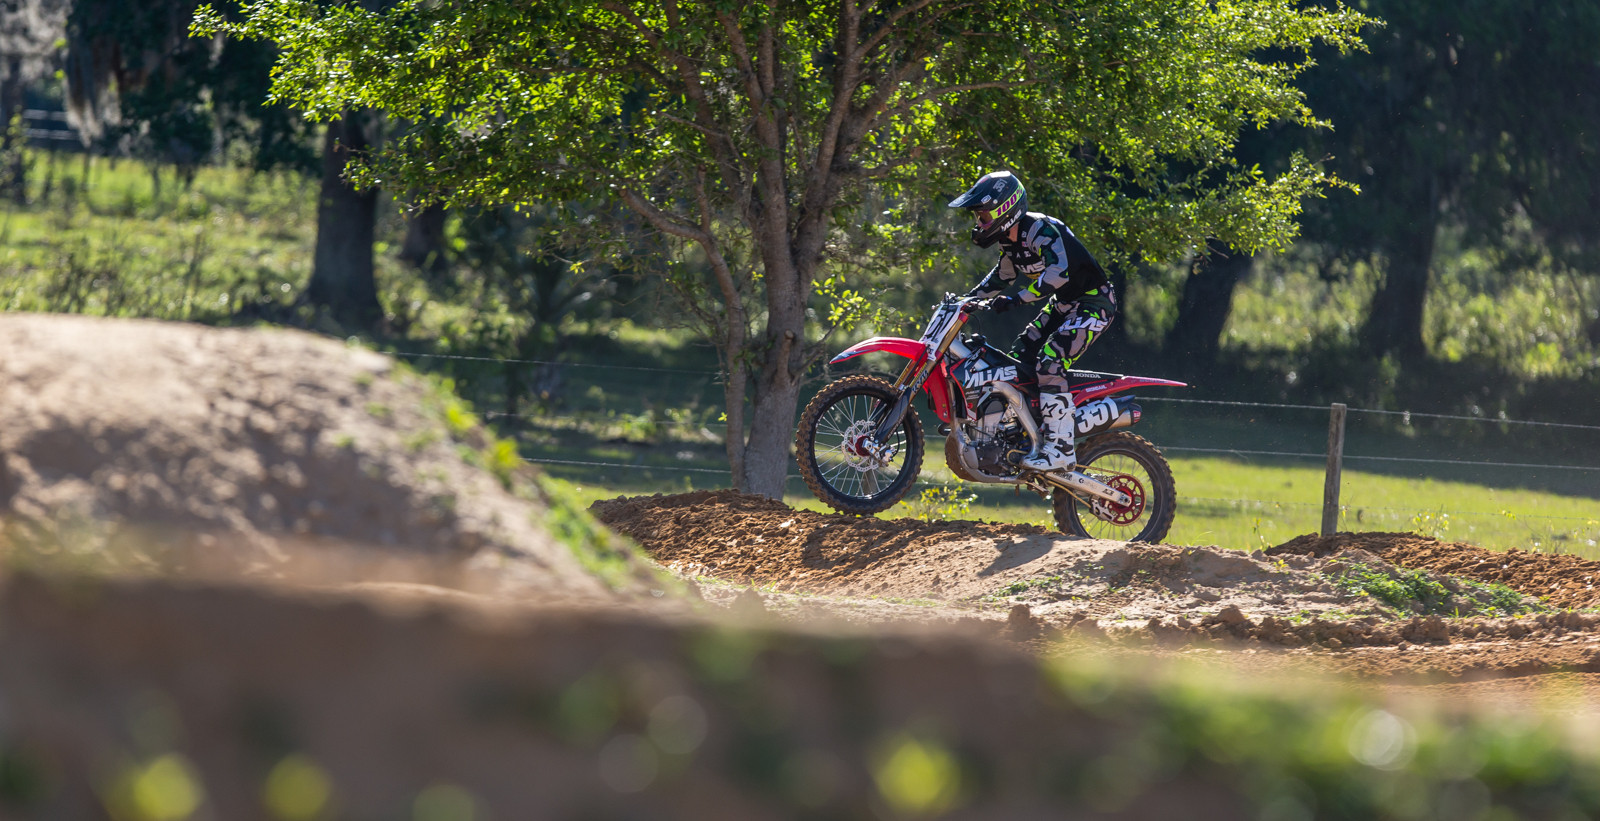 Eric Grondahl - Photo Gallery: The Nest, Goat Farm, and MTF - Motocross Pictures - Vital MX